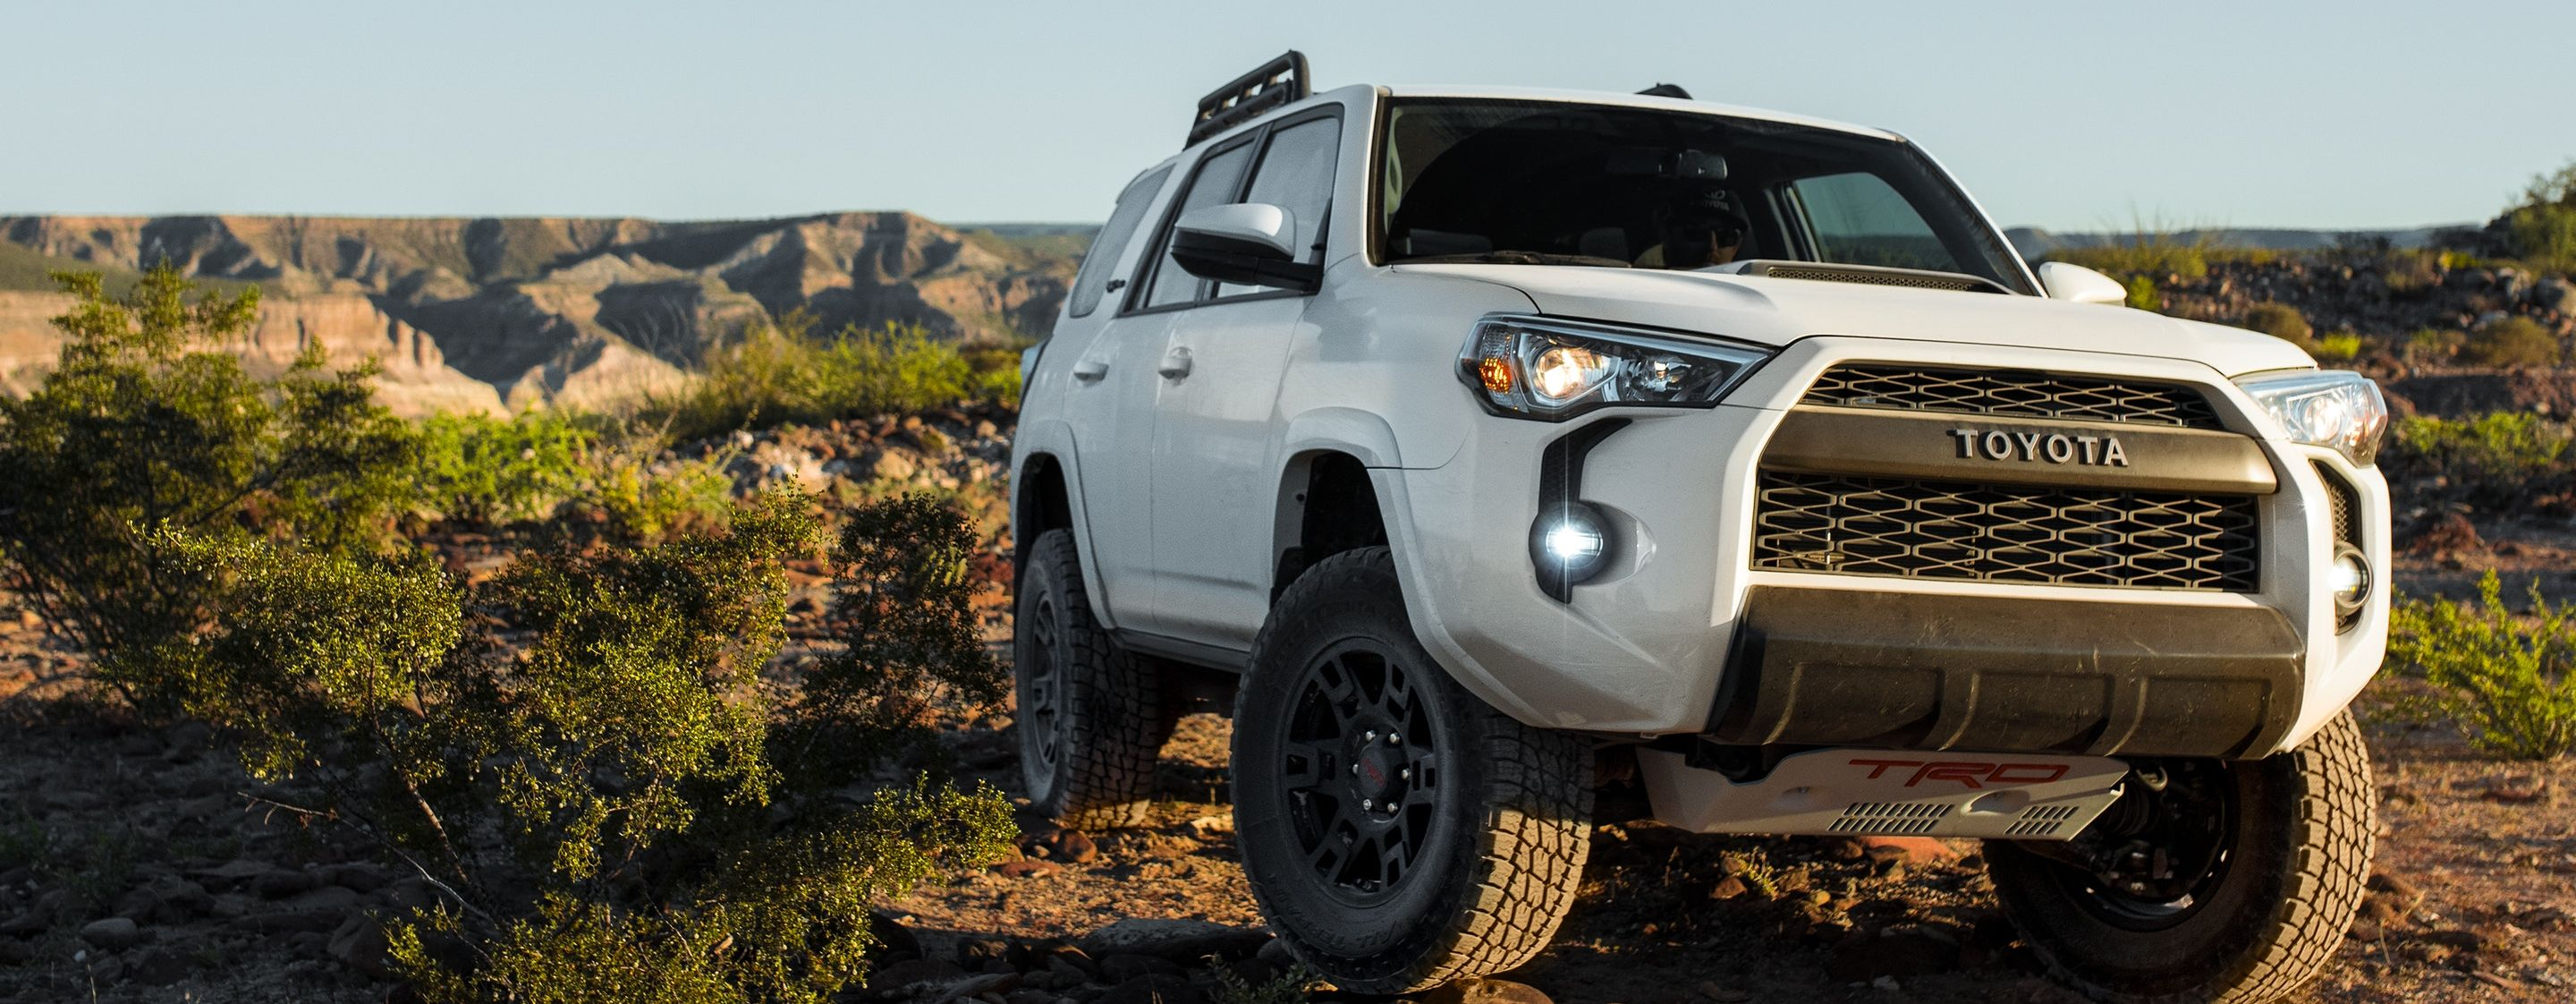 2019 Toyota 4Runner for Sale near Ragtown, MO